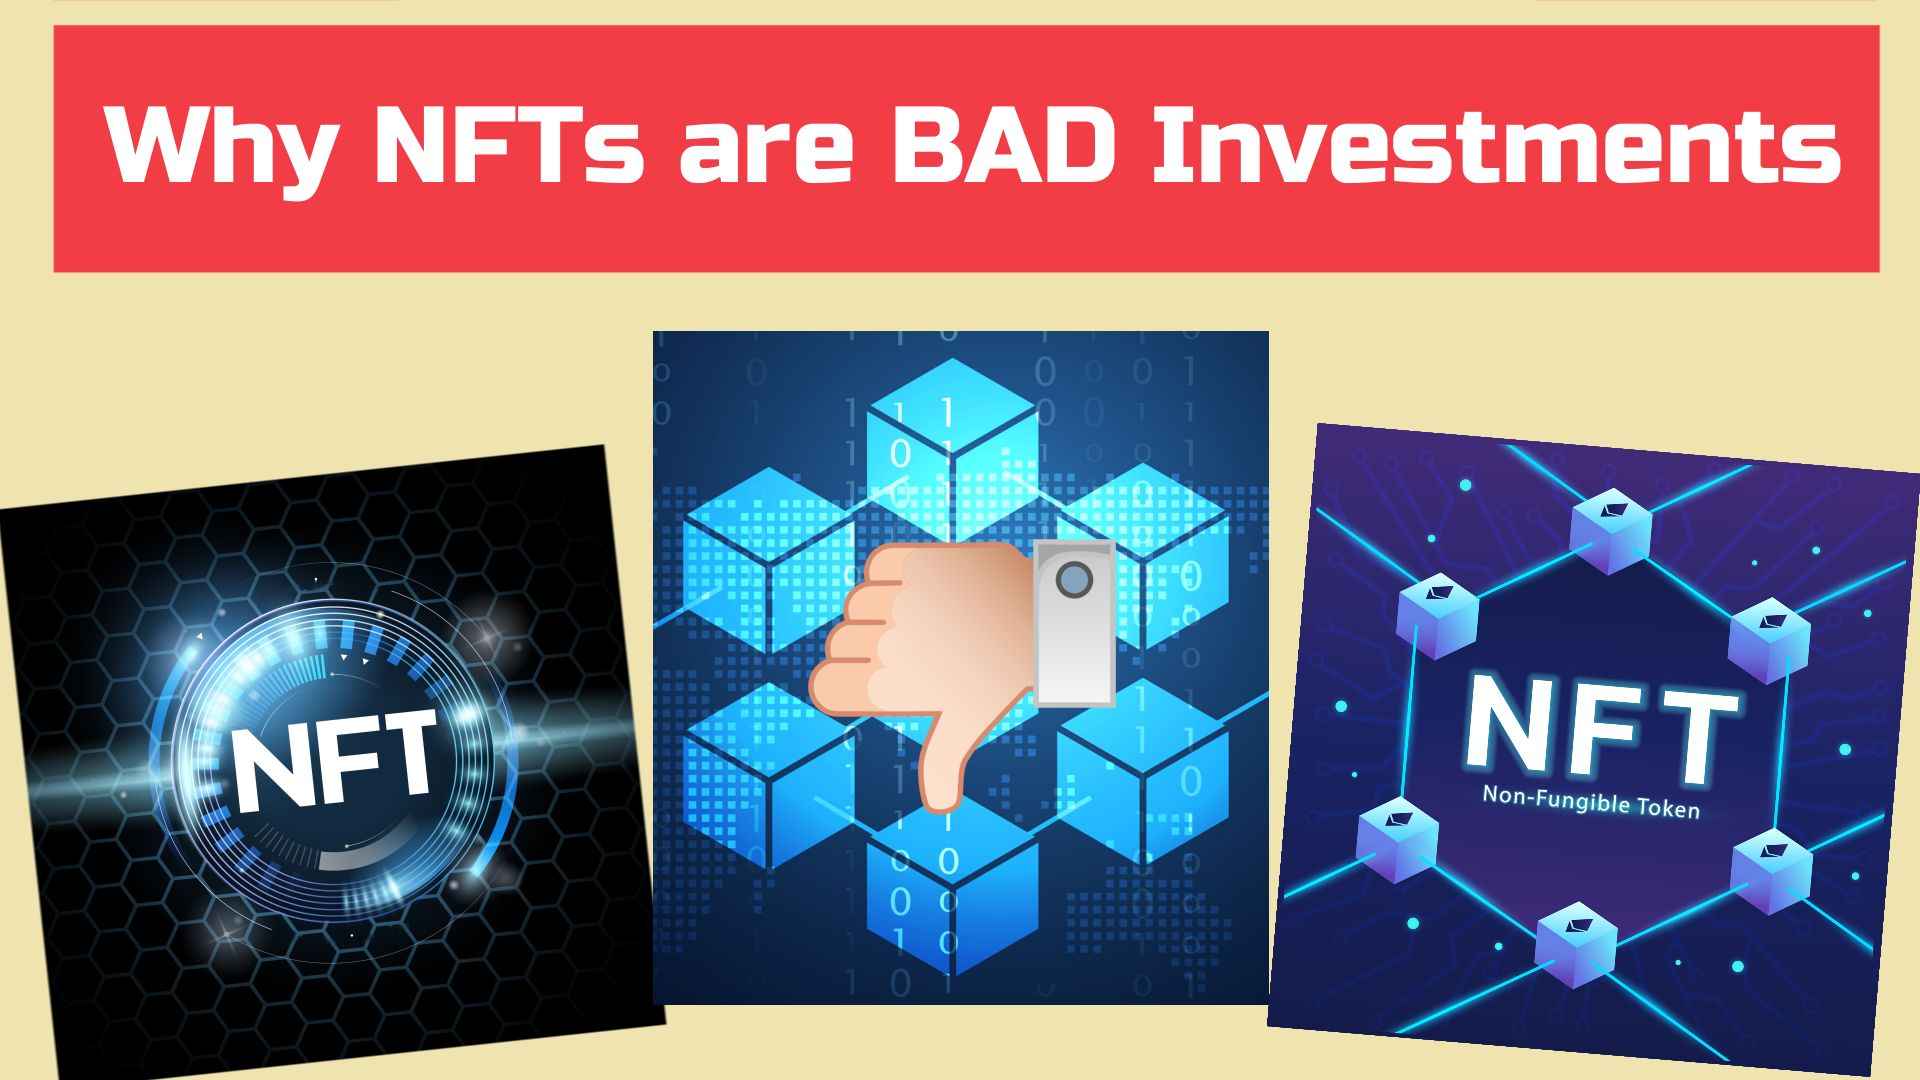 7 Reasons to Avoid Investing in NFT Non Fungible Token